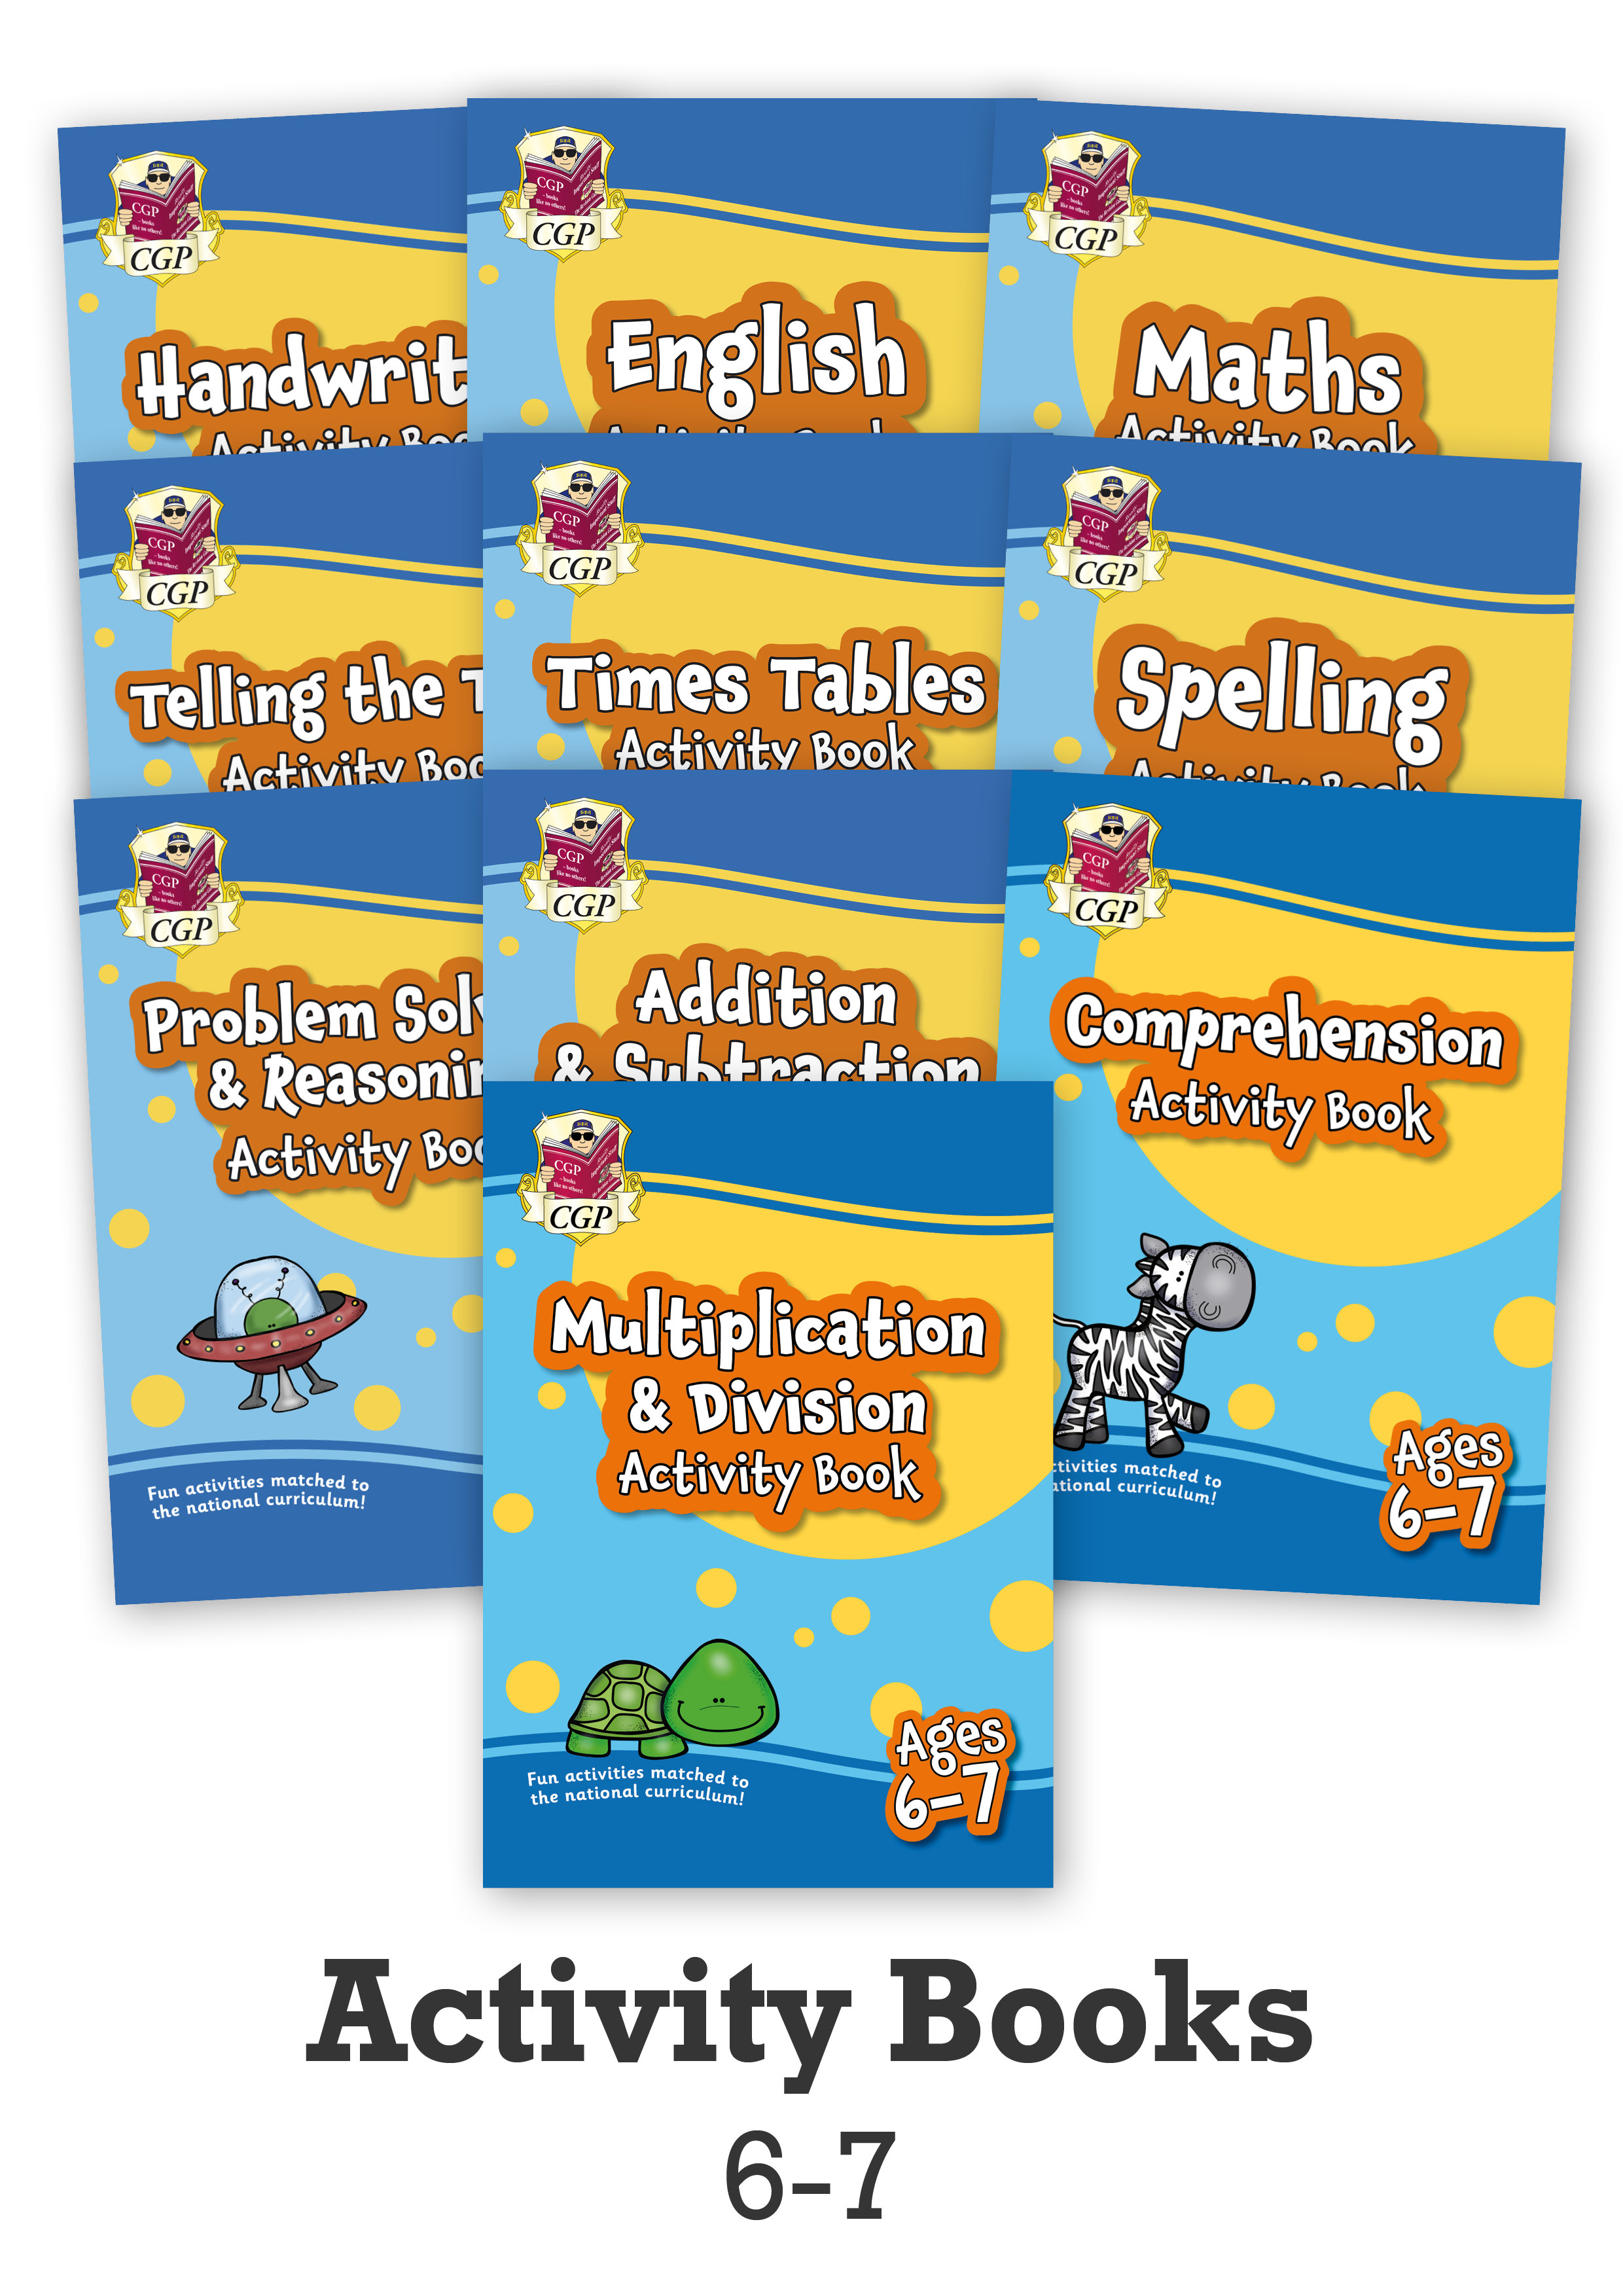 EMPF2B13 - New Ages 6-7 Activity Books - 10-book bundle